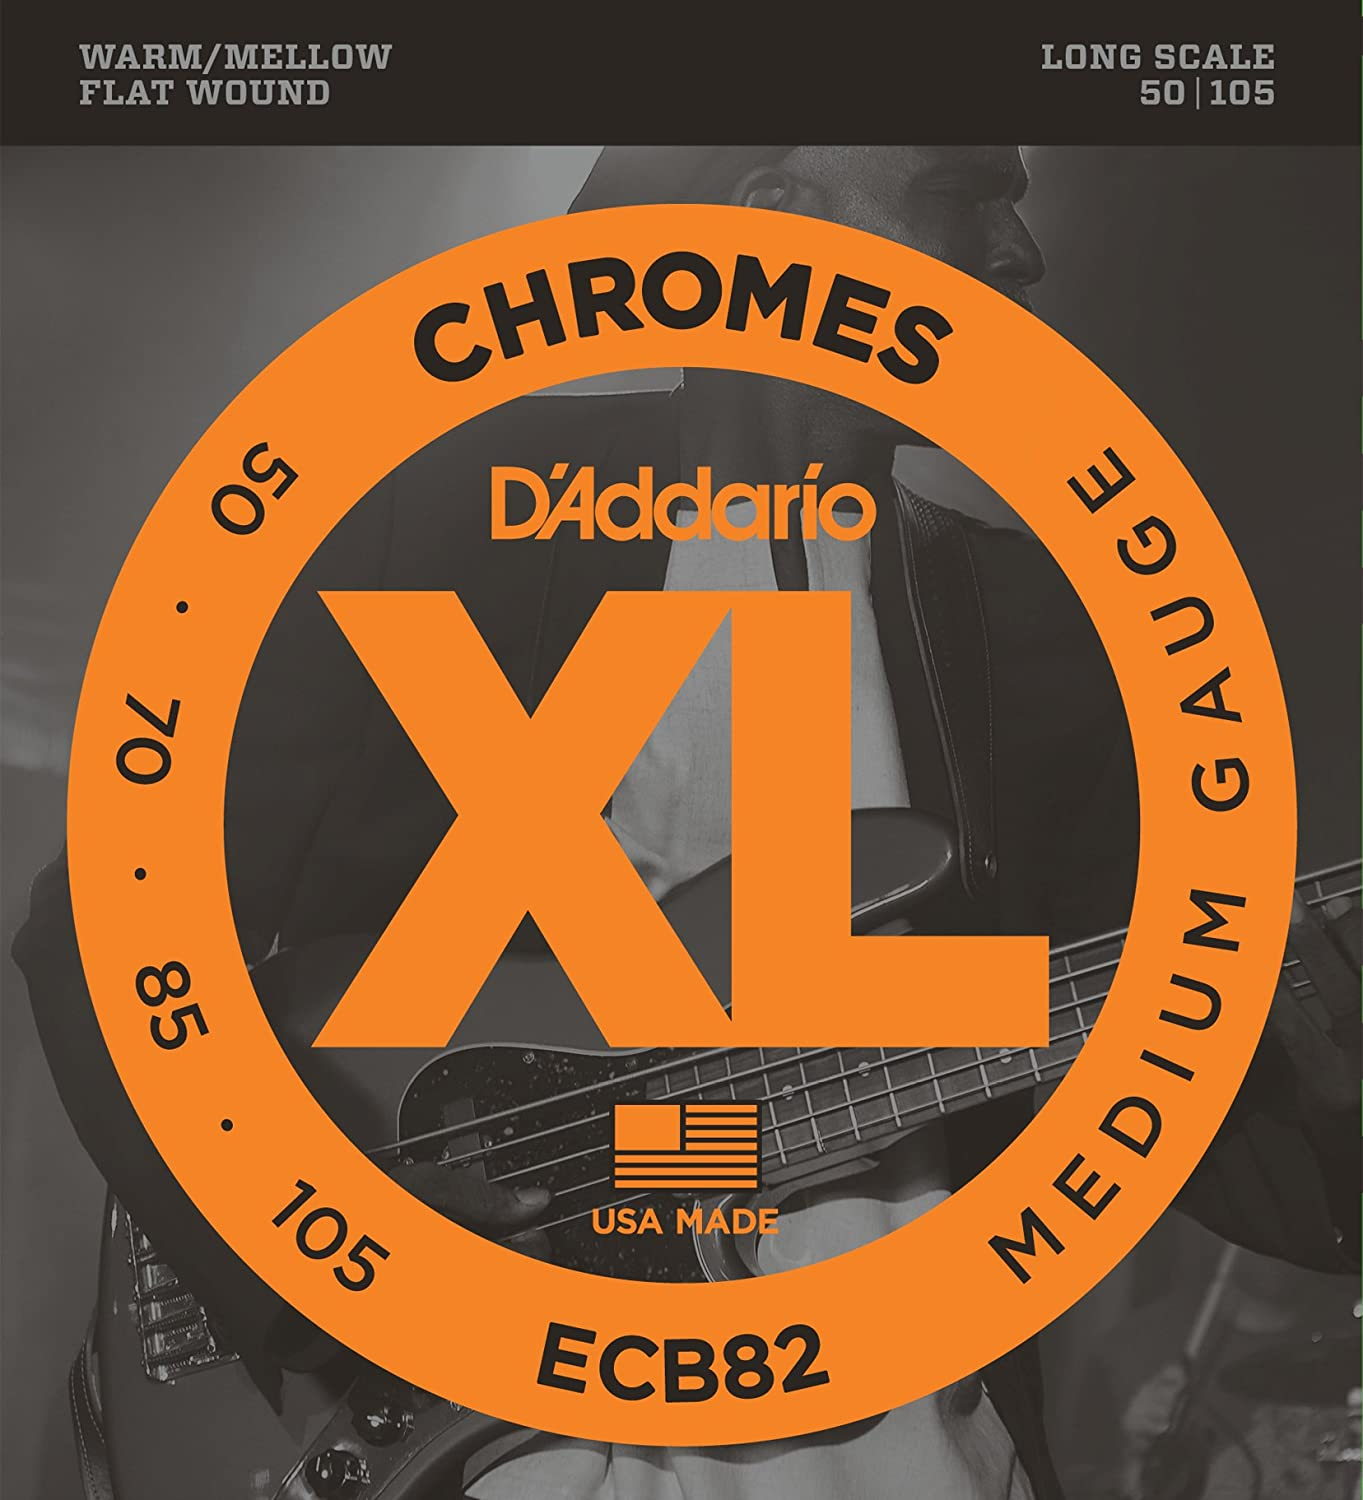 D'Addario ECB82 Chromes Bass Guitar Strings, Medium, 50-105, Long Scale D'Addario &Co. Inc